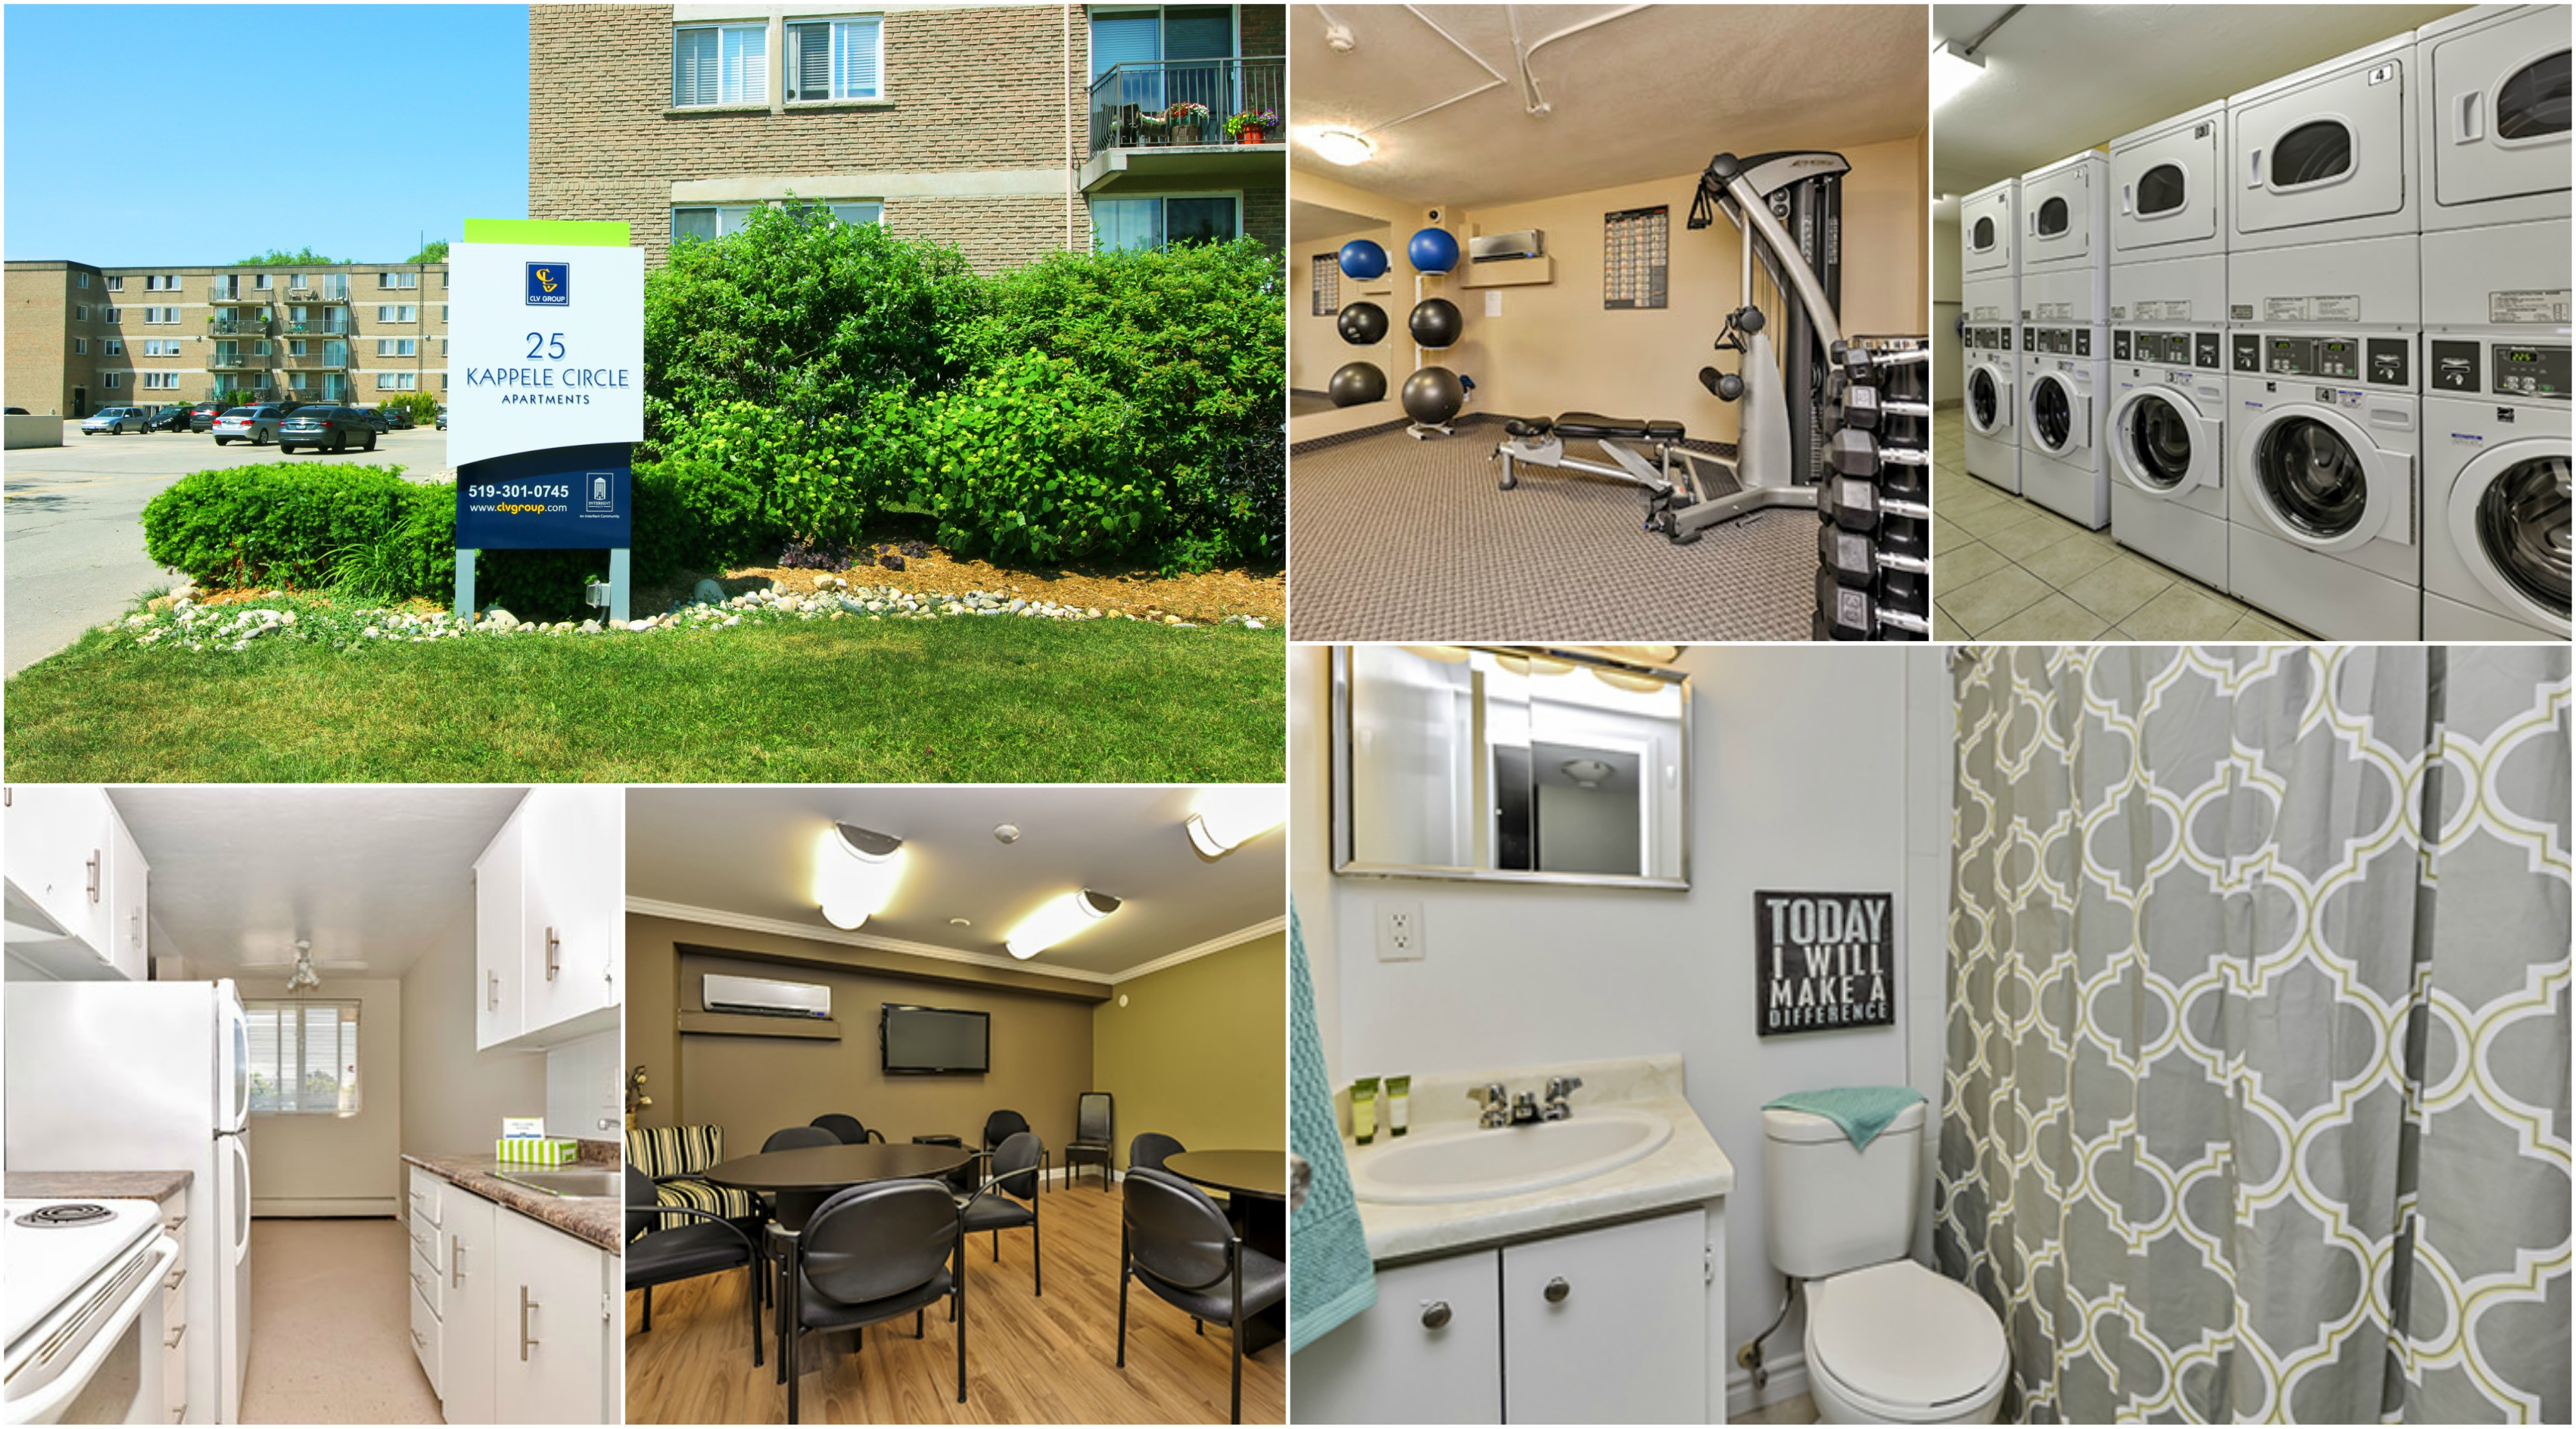 Kappele Circle Apartments Stratford_Stratford Apartments for Rent_CLV Group